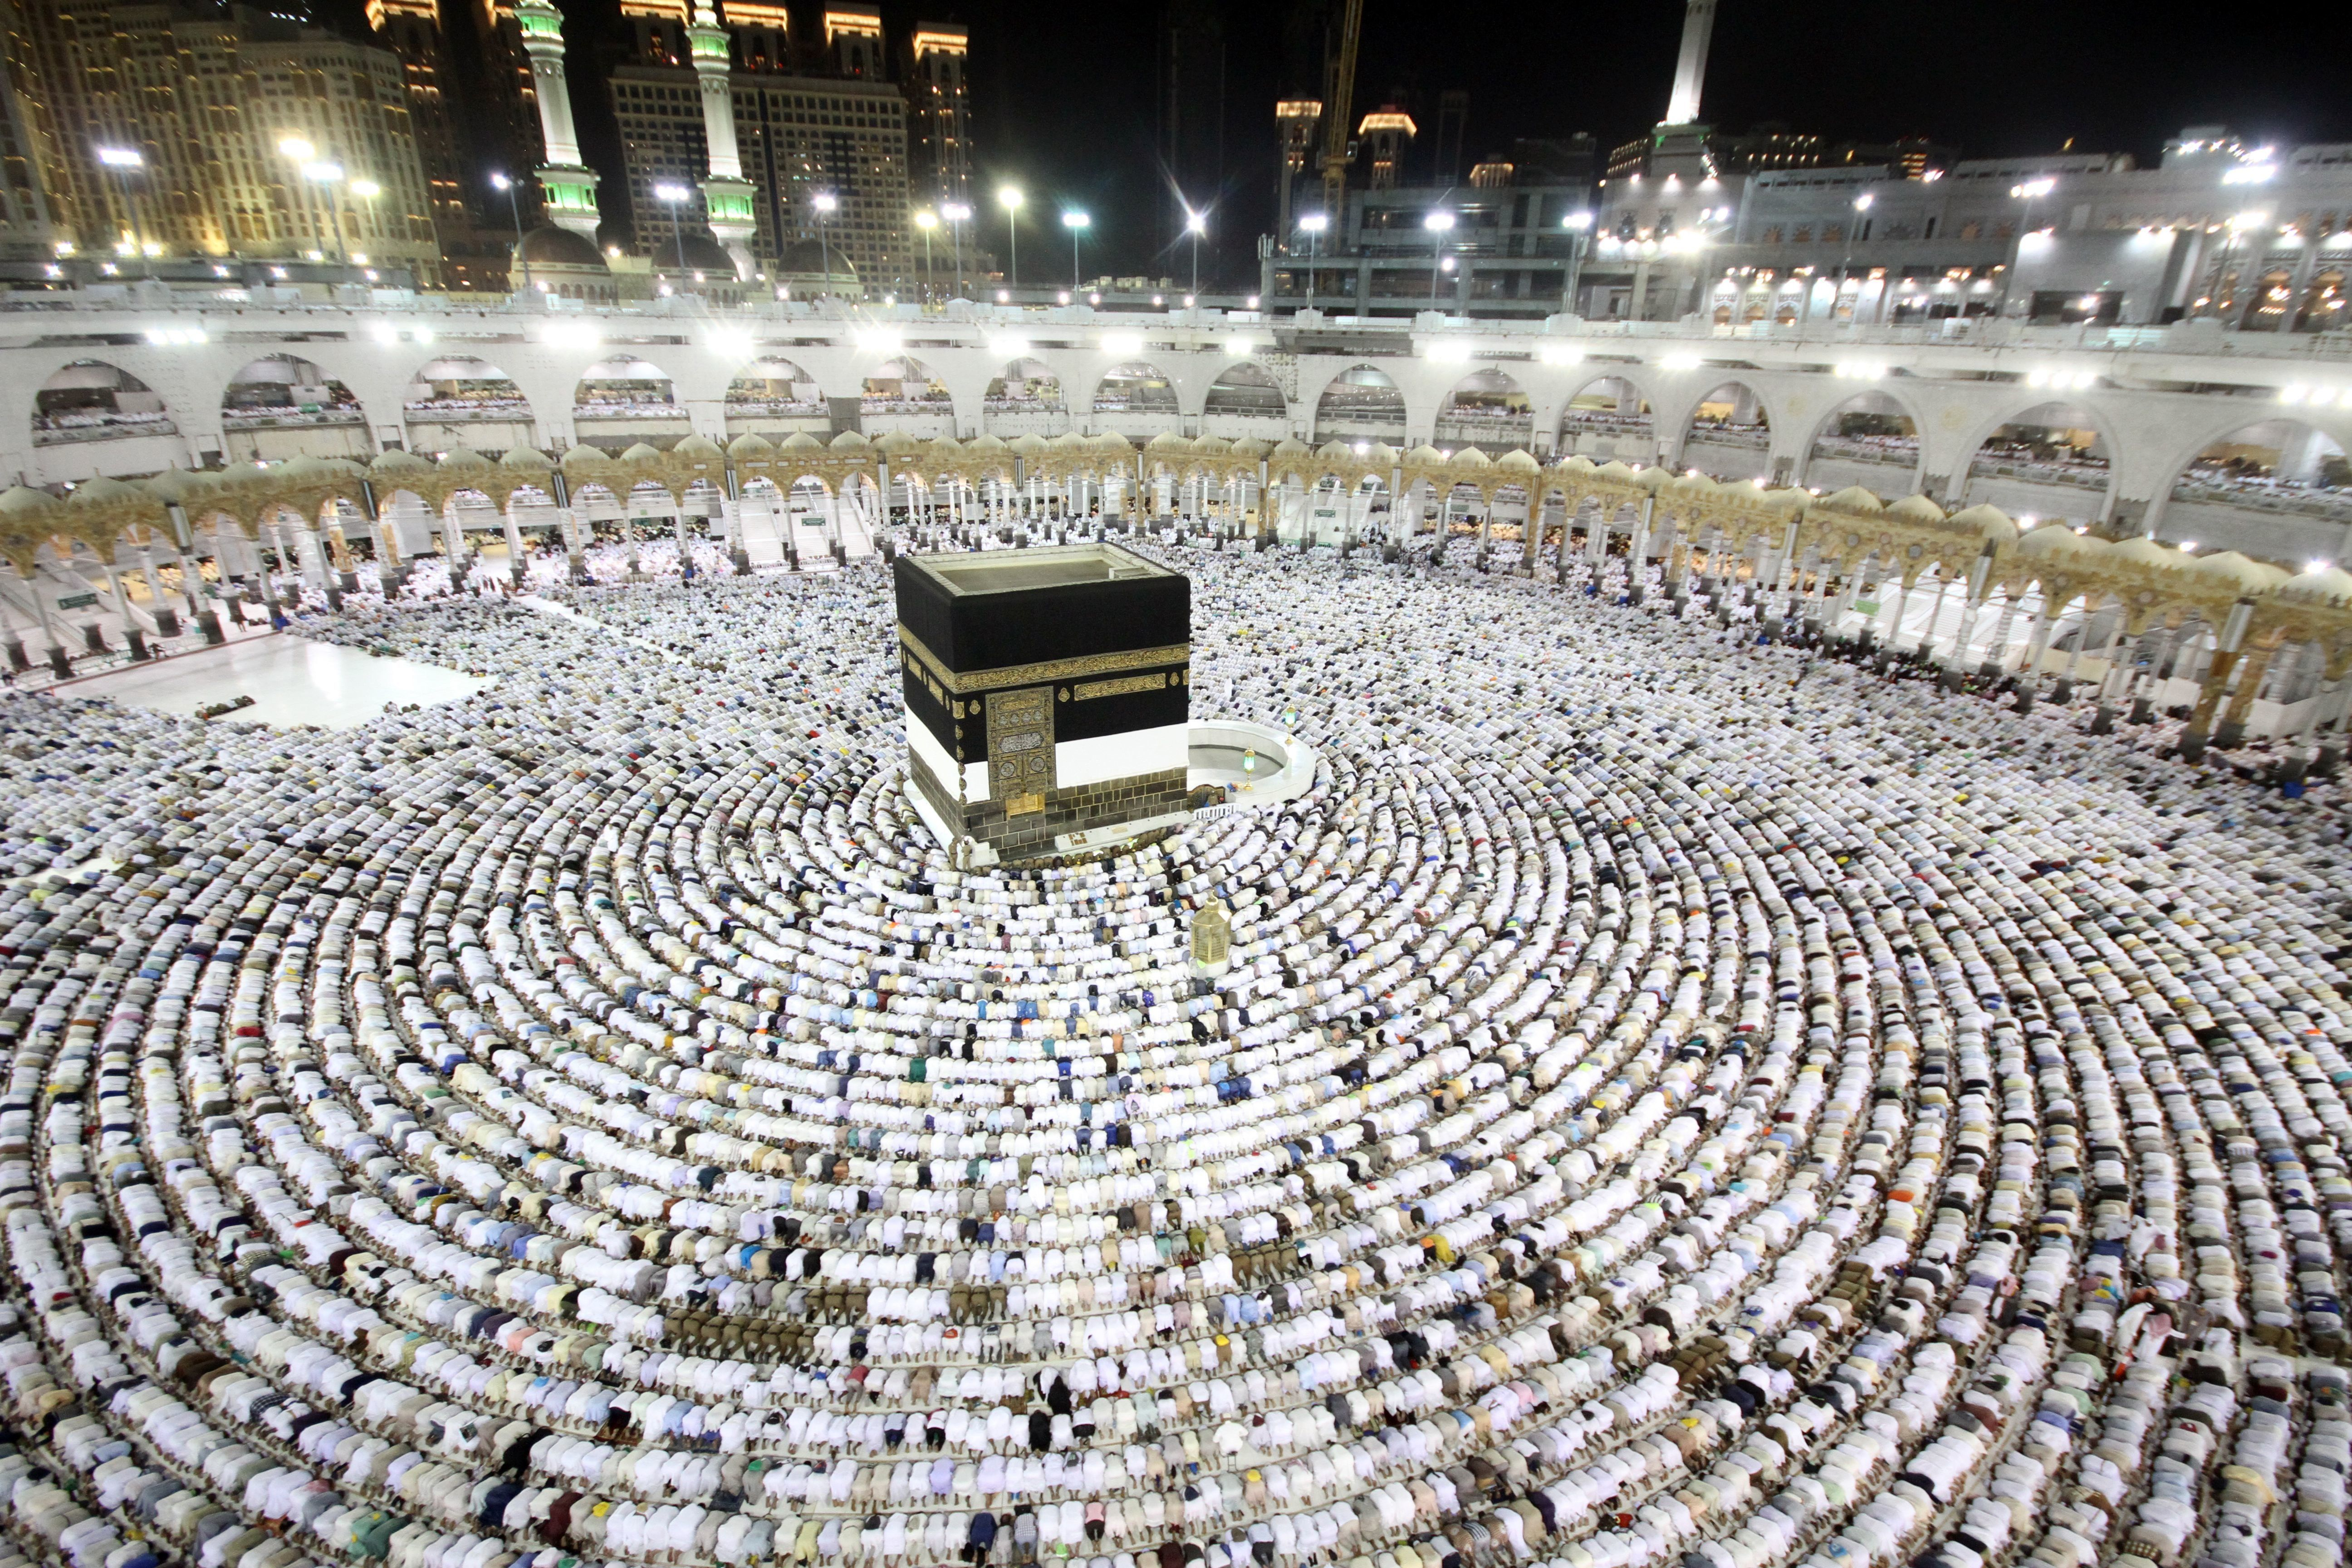 A Look At Mecca, Islam's Holiest Site, At The Height Of The Hajj